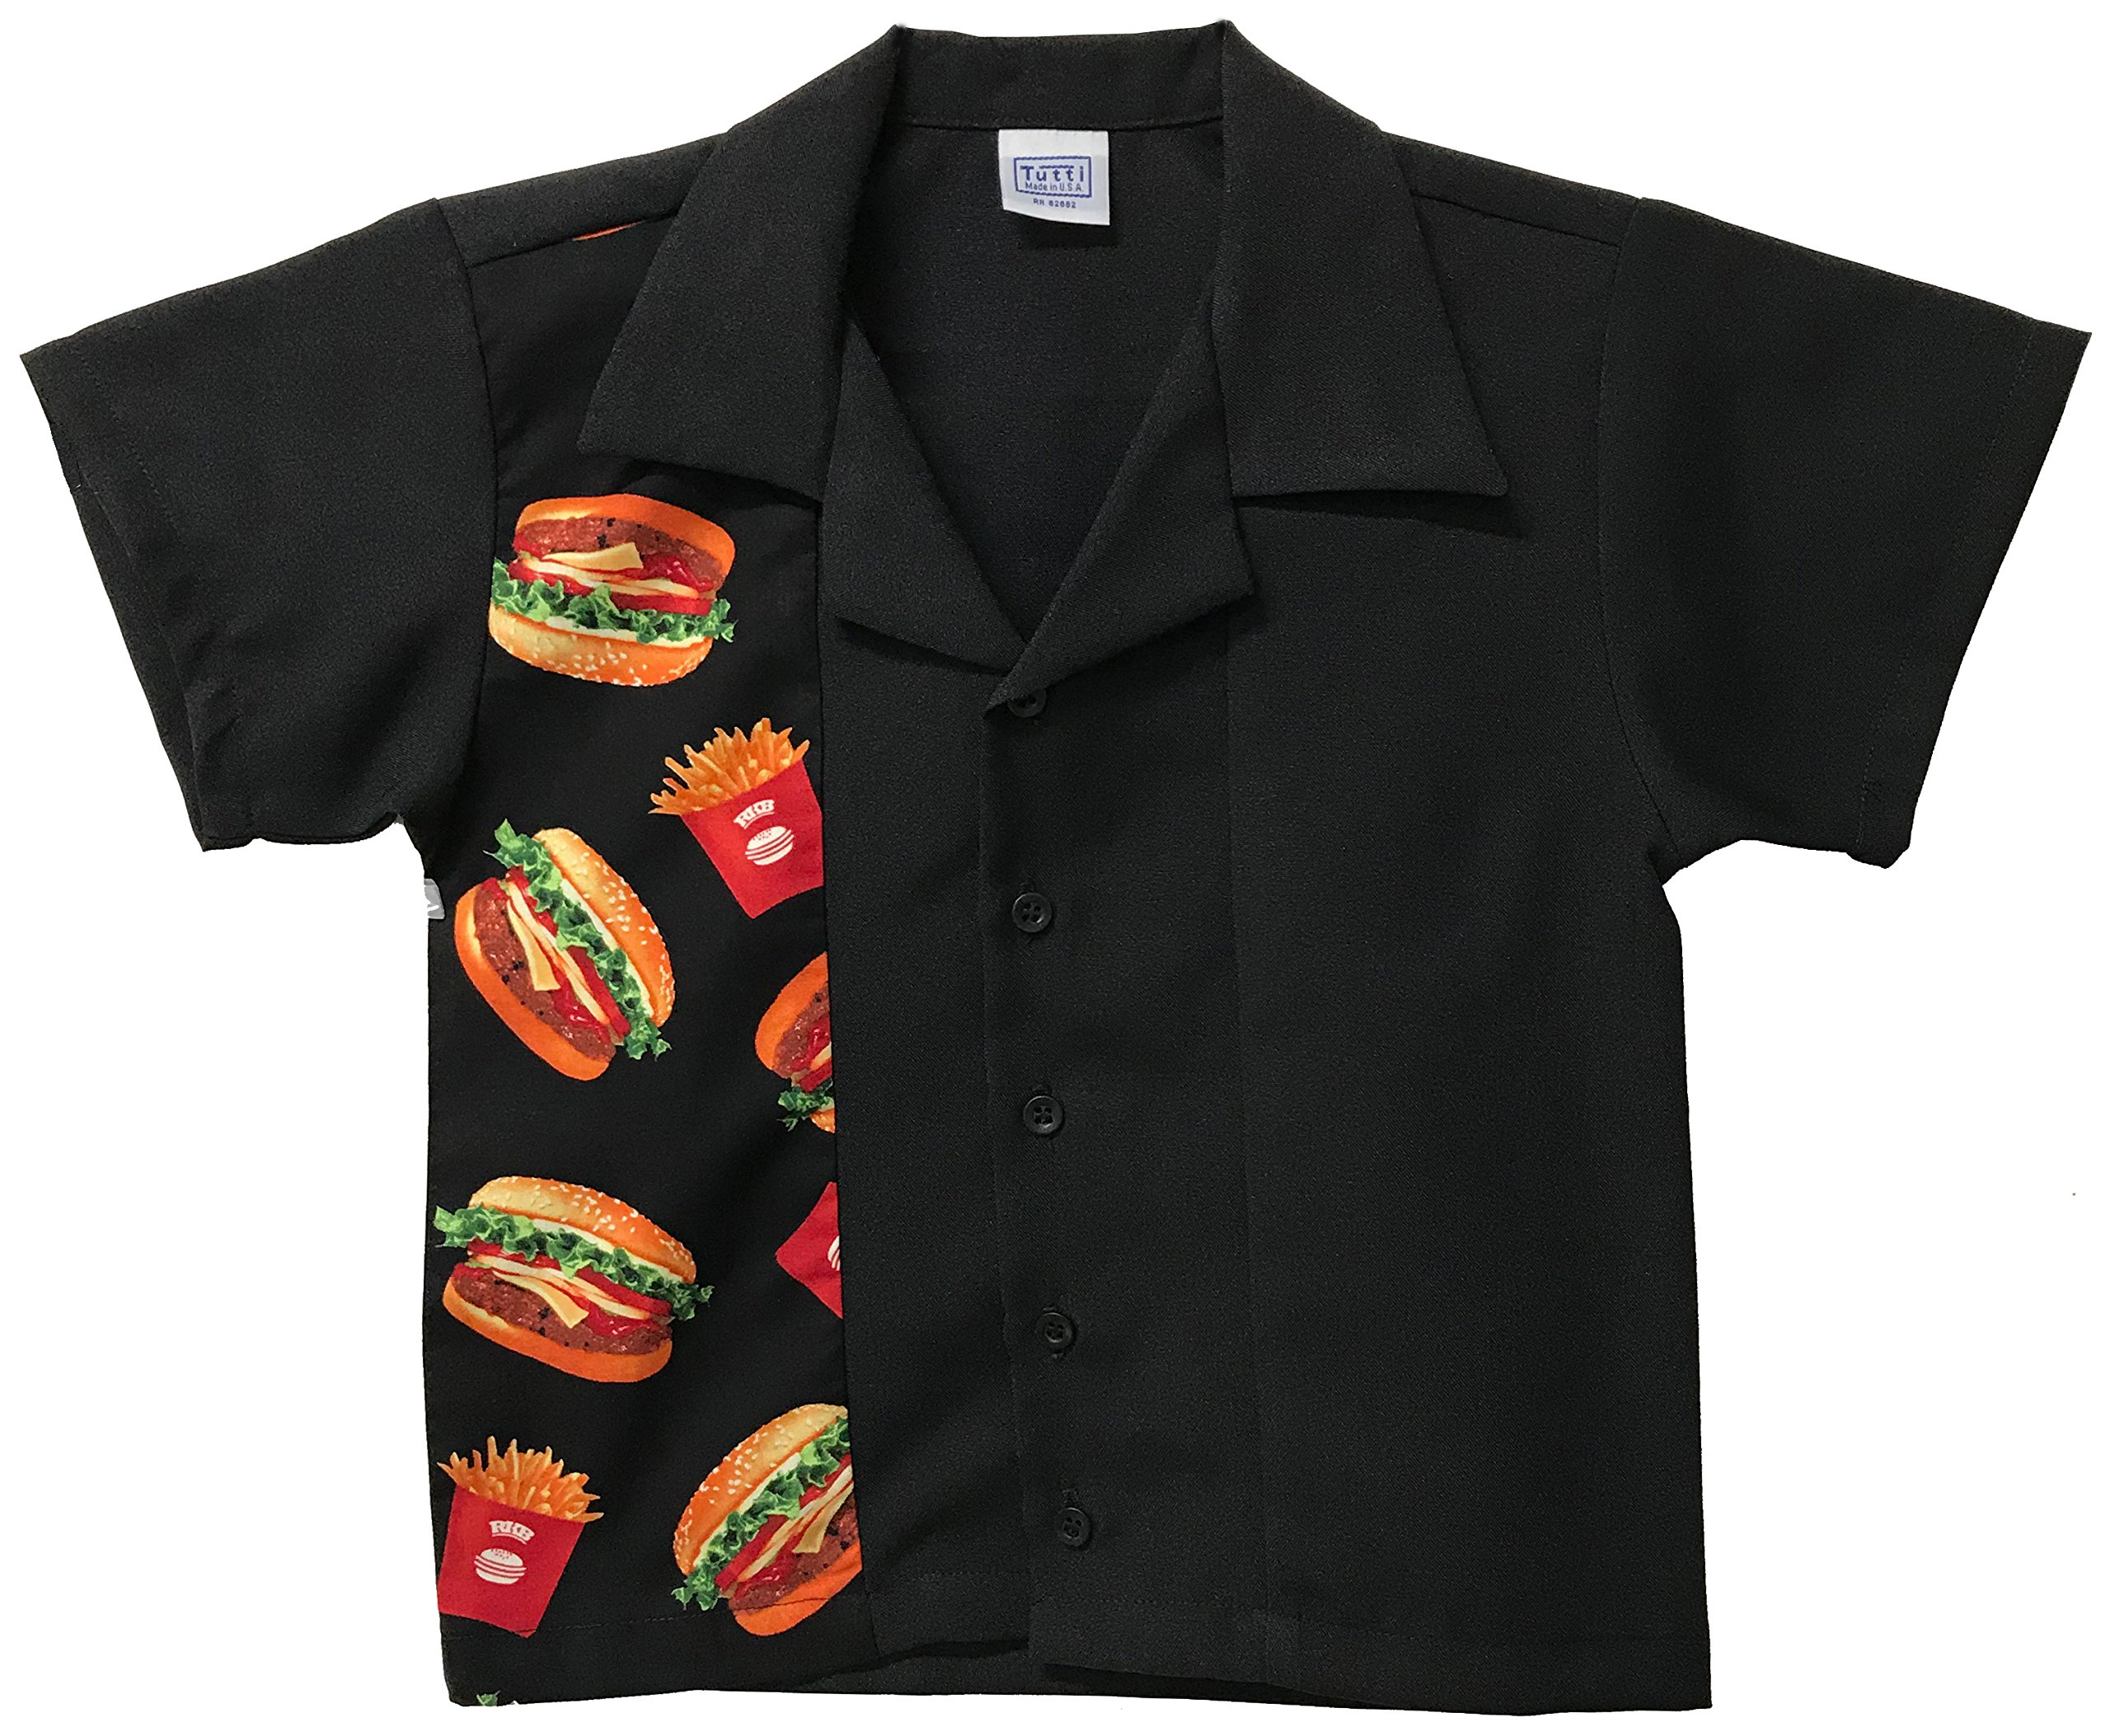 Tutti Kids Bowling Shirt Children Sizes with Burger and Fries Print Design (Small 2T-3T)